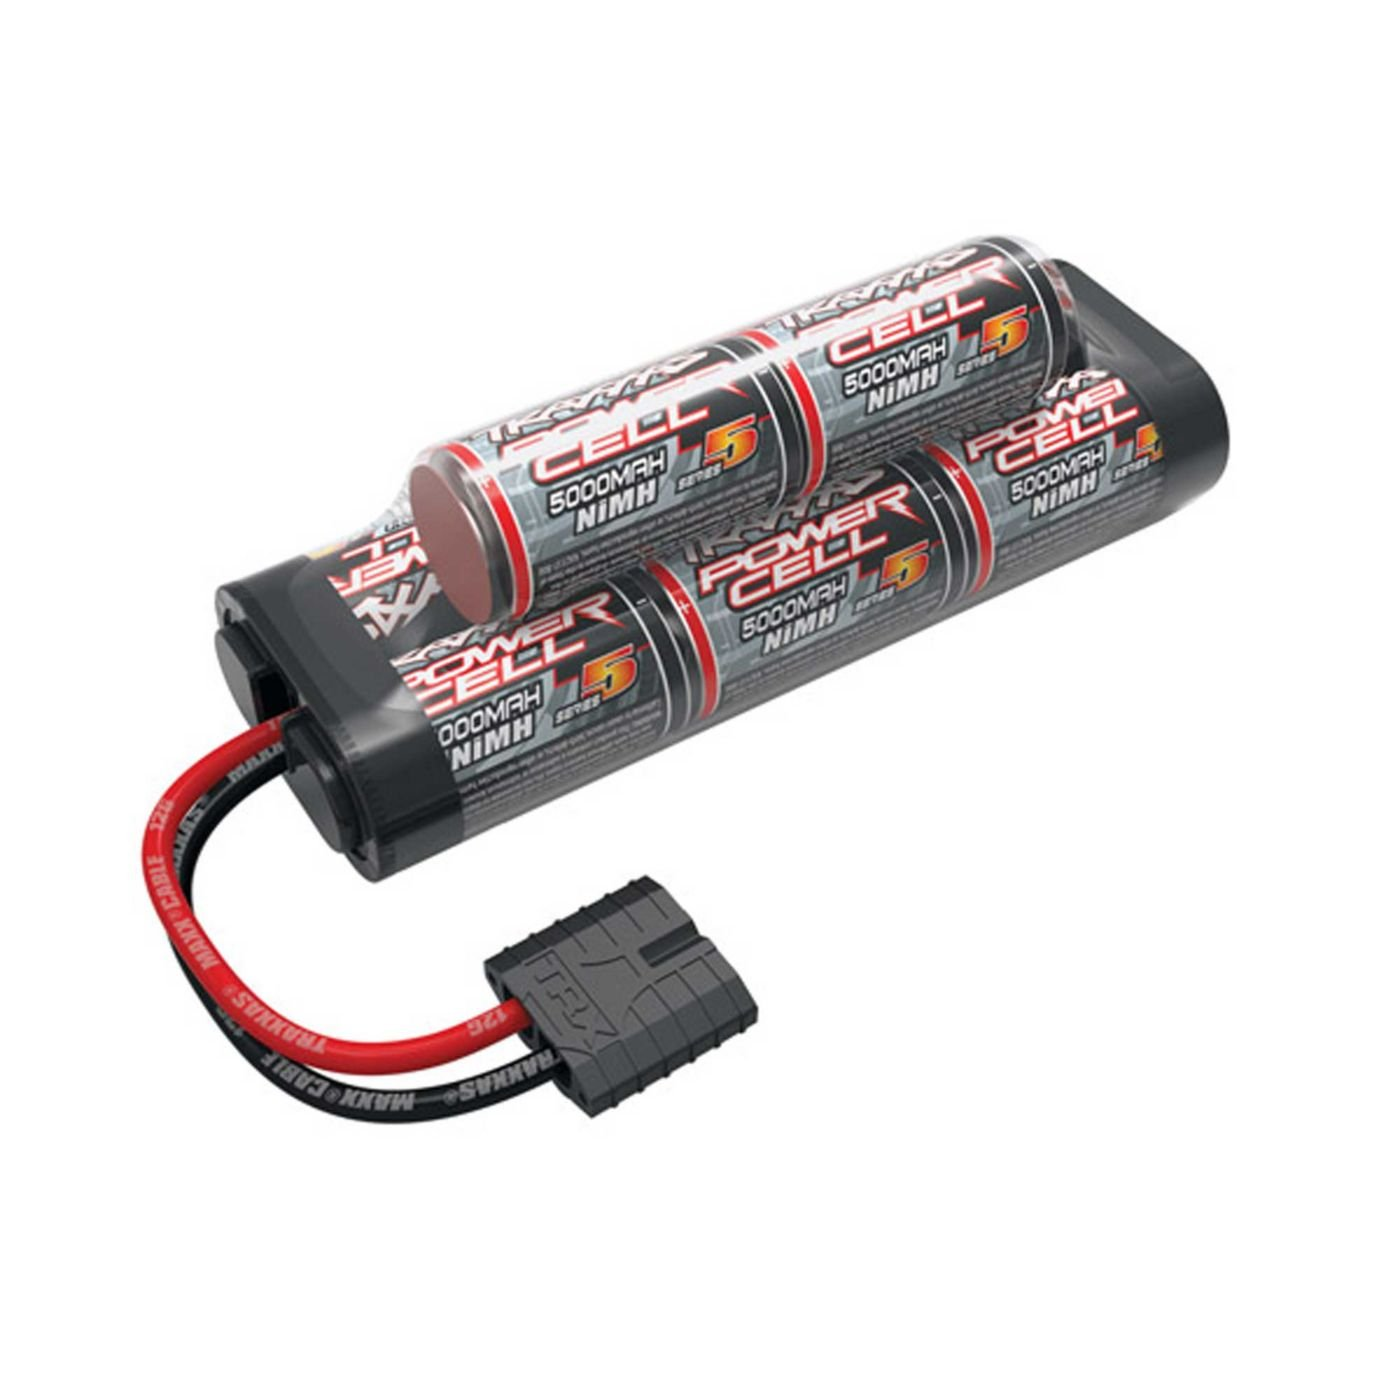 Amazon Traxxas 2963X NiMH 8 Cell 9 6V Series 5 5000mAh Battery hump pack Toys & Games